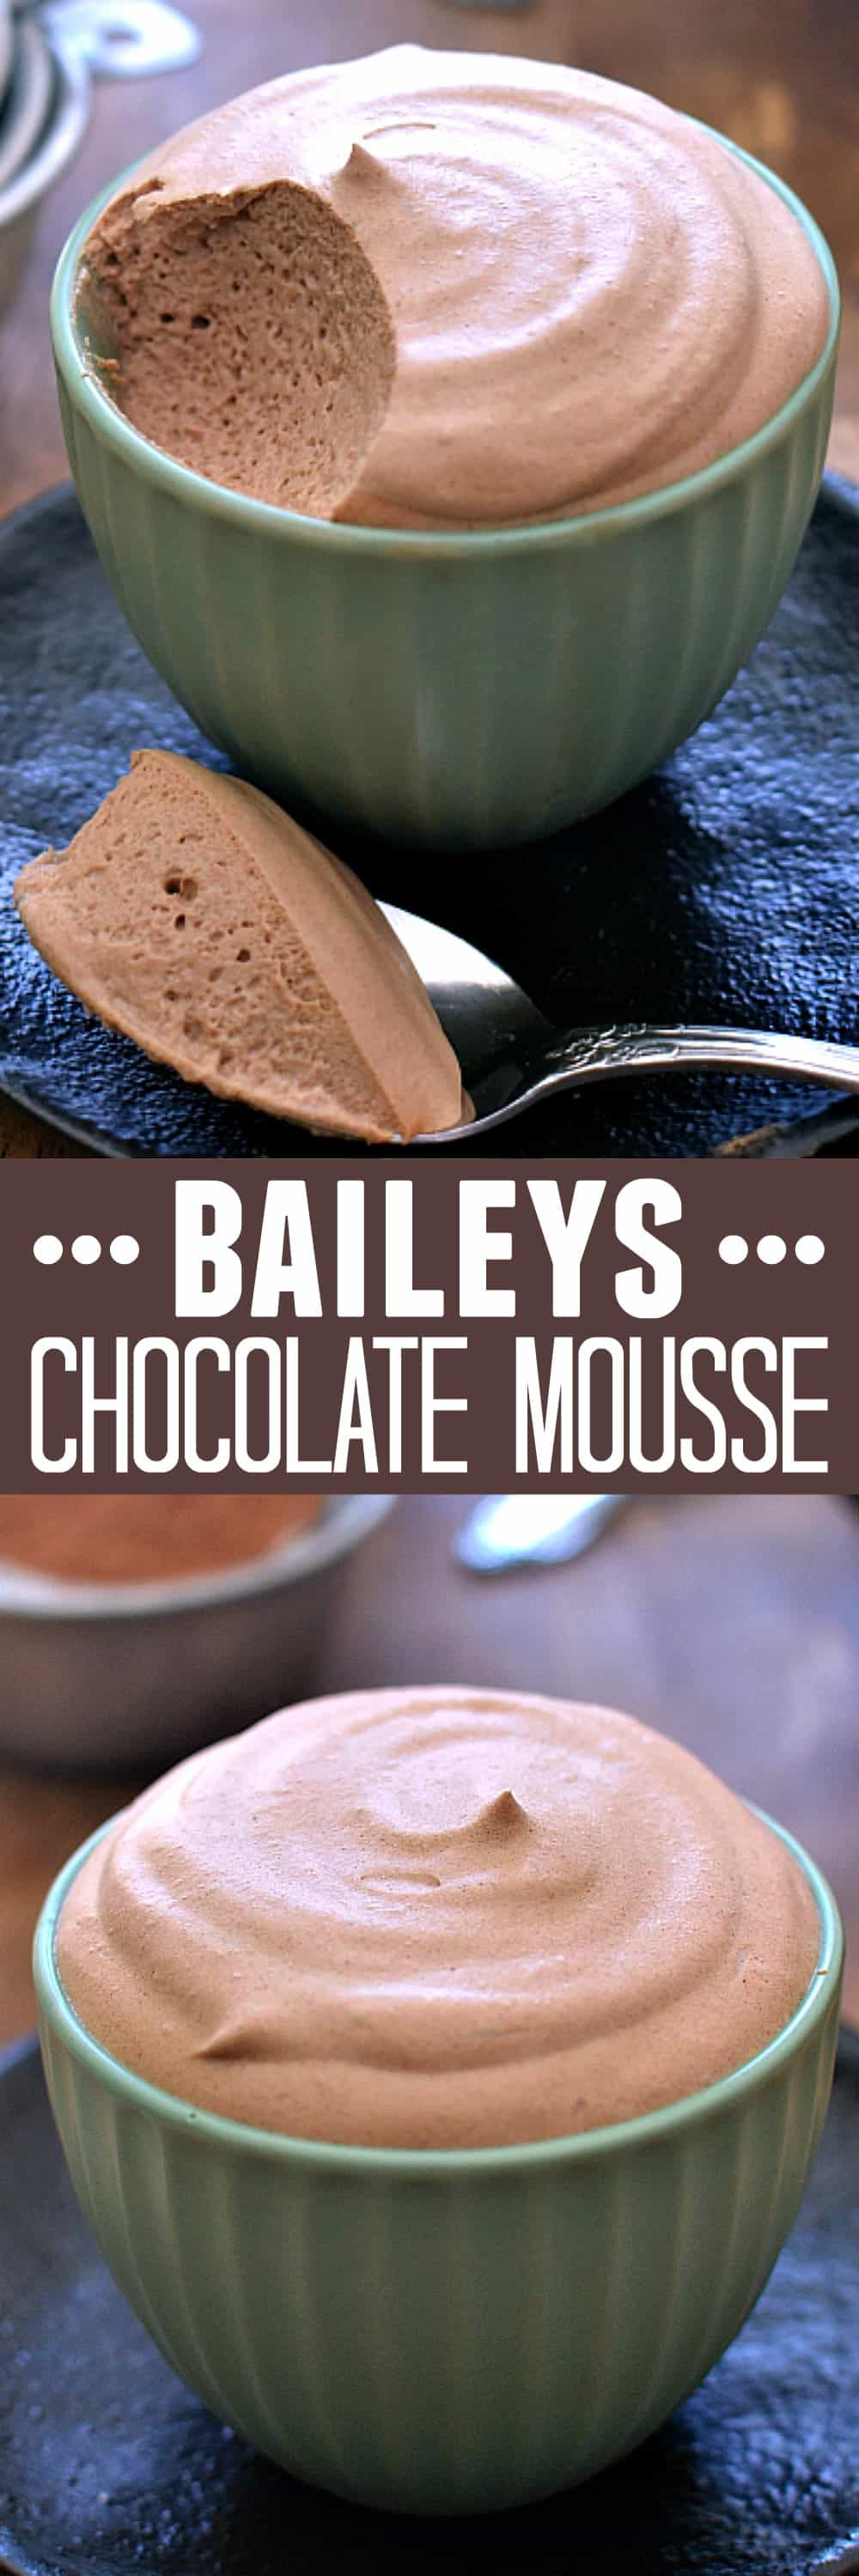 Baileys chocolate mousse is deliciously light, fluffy chocolate mousse, infused with the sweet flavor of Baileys Irish Cream.Perfect St. Patrick's Day dessert recipe!